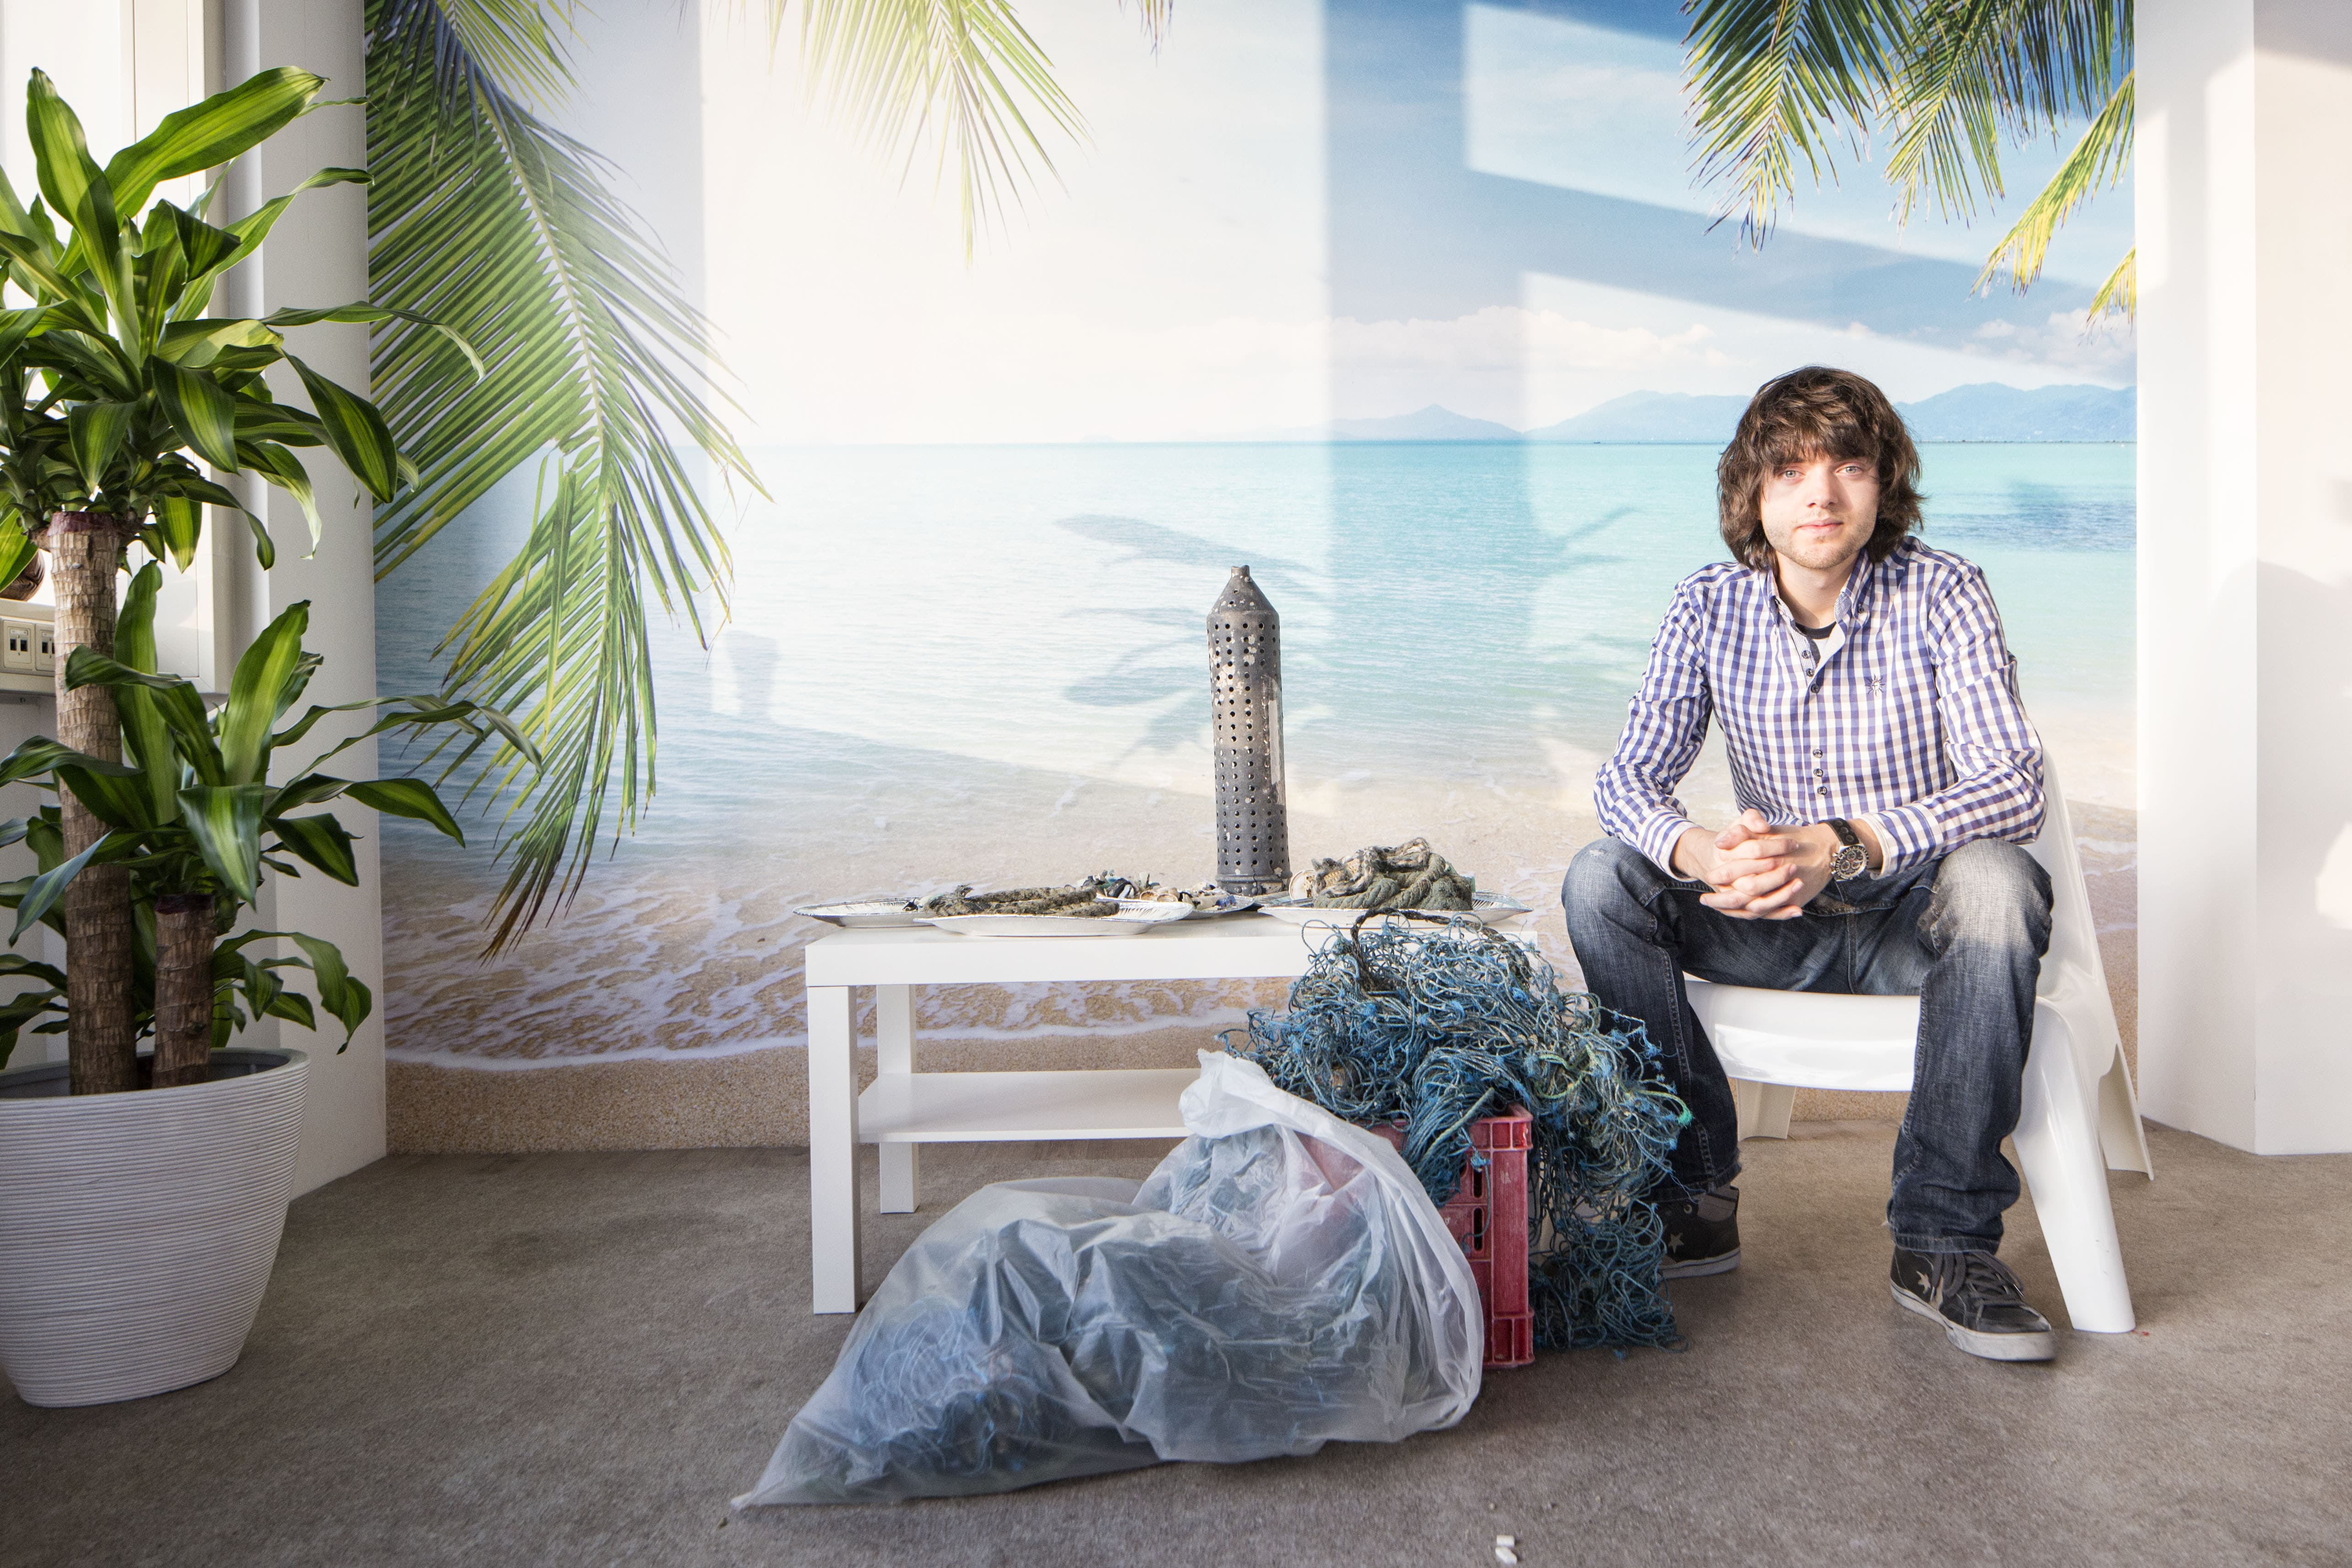 The Ocean Cleanup is developing world's first feasible method to rid the oceans of plastic. The Ocean Cleanup's goal is to extract, prevent, and intercept plastic pollution by initiating the largest cleanup in history.